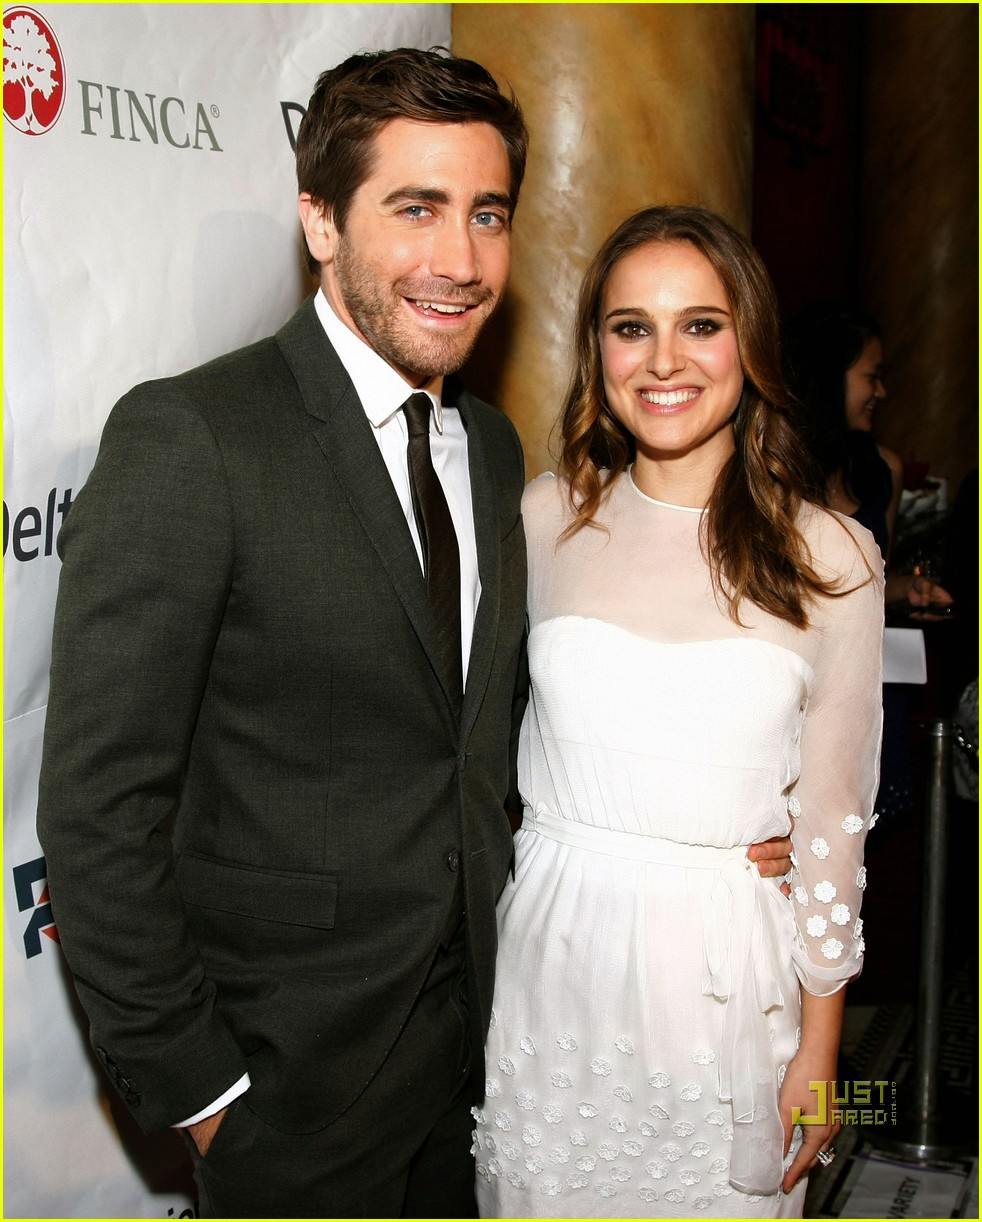 Photo of Natalie Portman & her friend  Jake Gyllenhaal